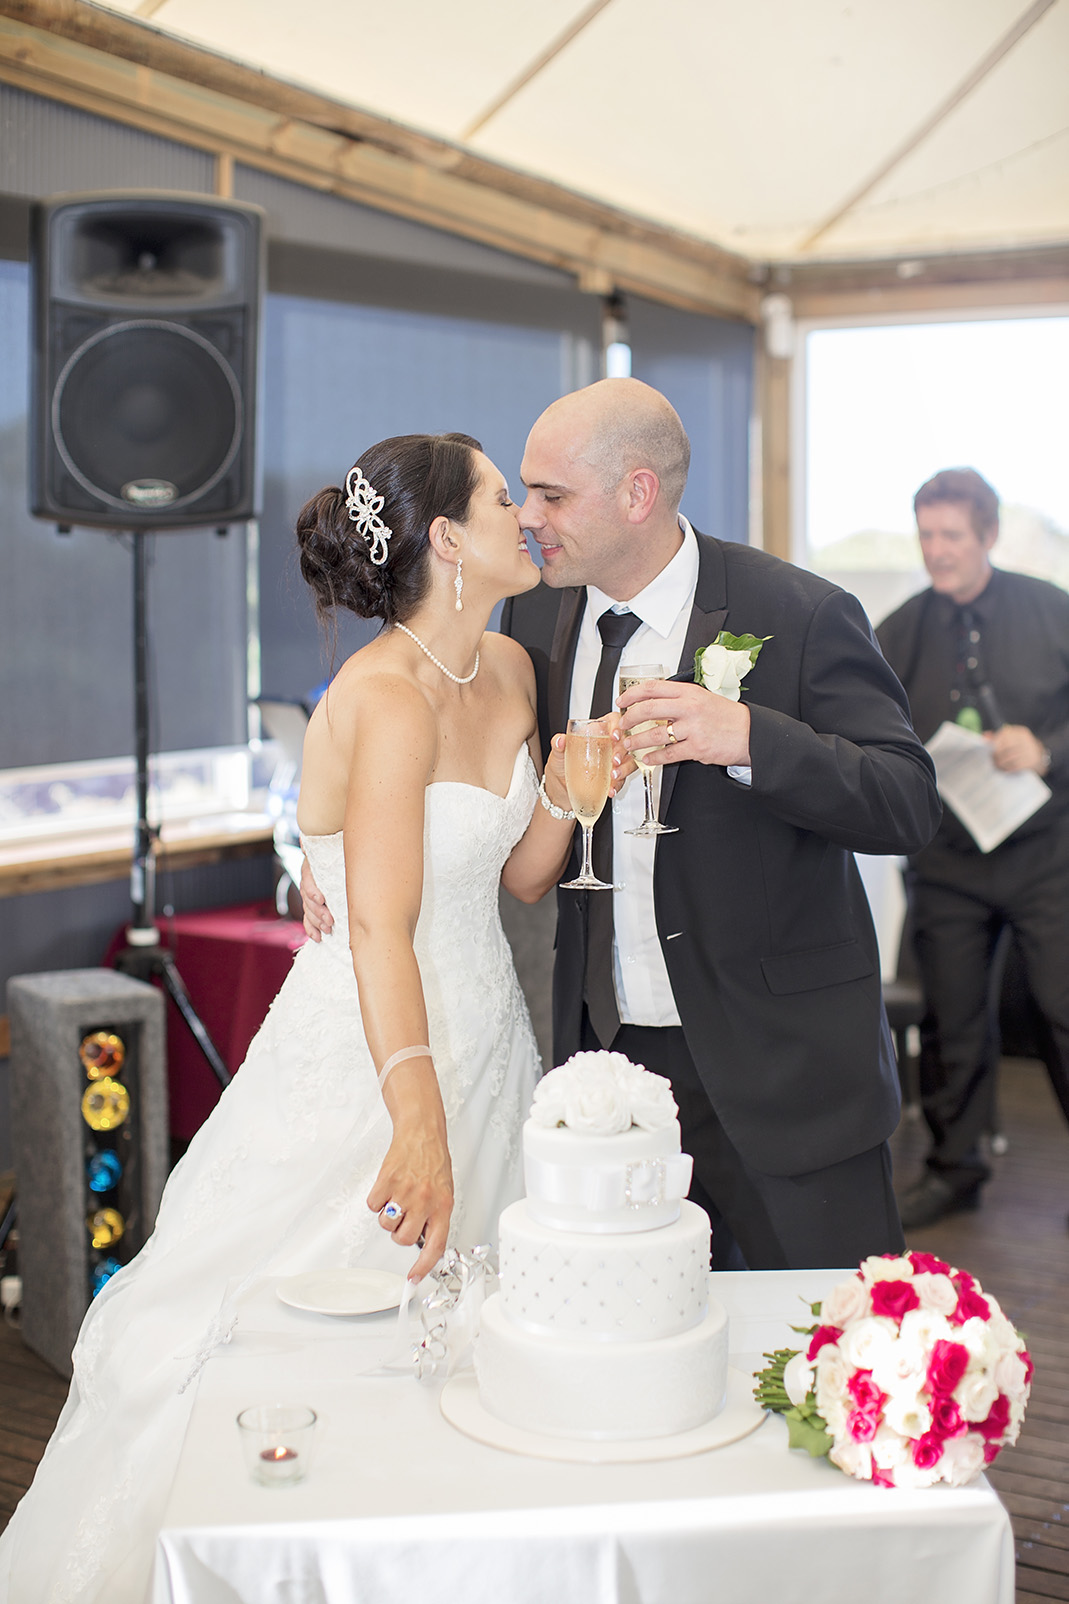 Friendly Adelaide Wedding Photographer 025.jpg